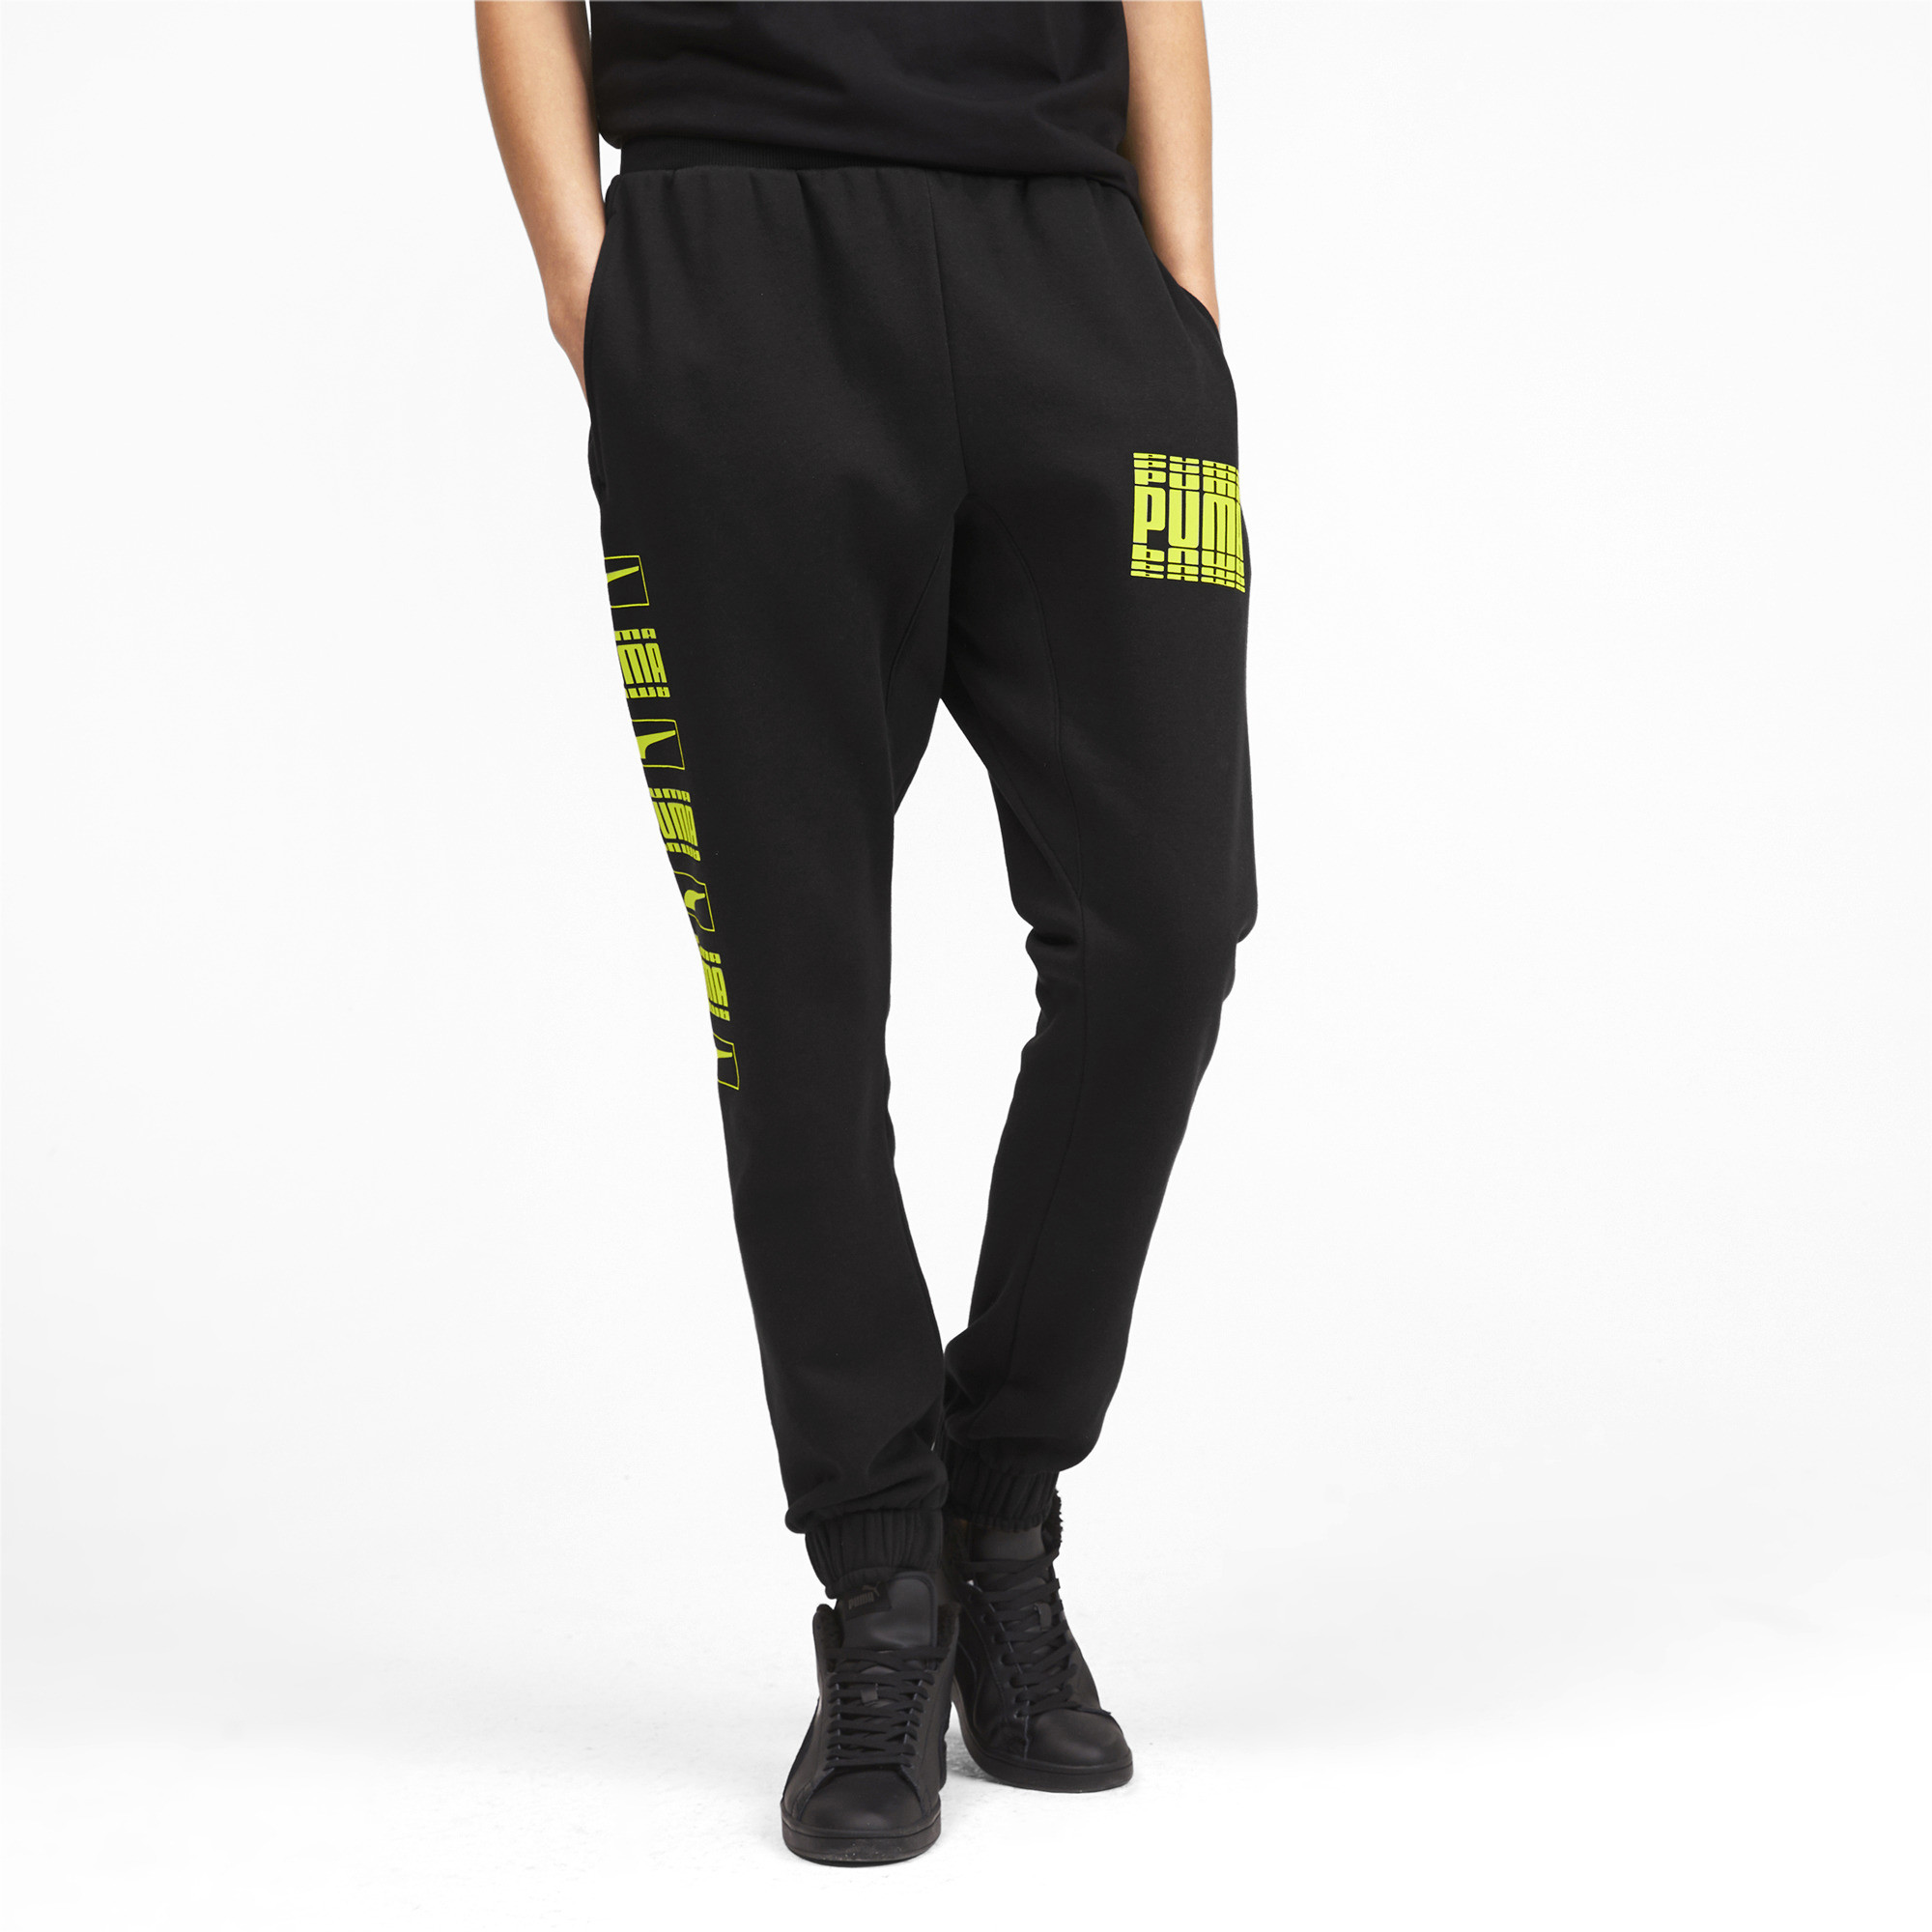 PUMA-Rebel-Bold-Men-039-s-Sweatpants-Men-Knitted-Pants-Basics thumbnail 9